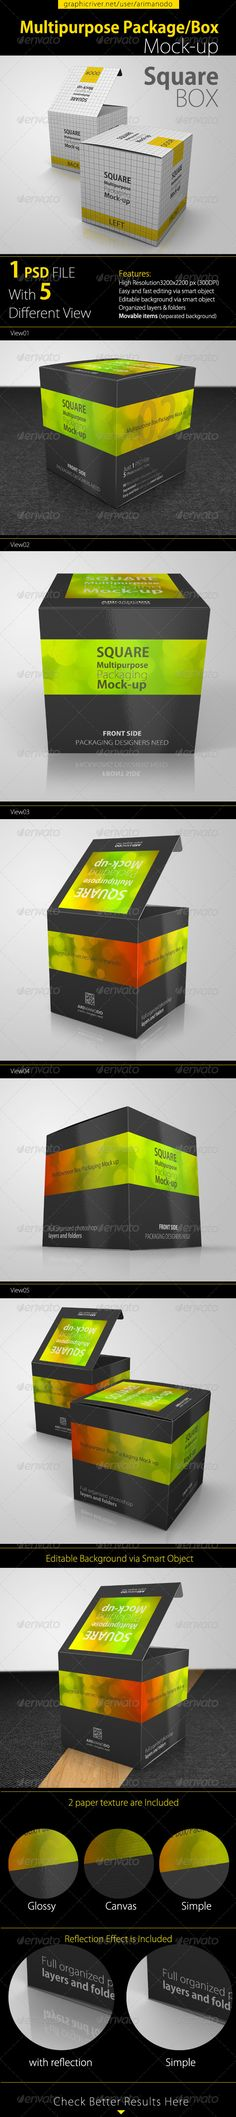 Multipurpose Square Package/Box Mock up  #GraphicRiver